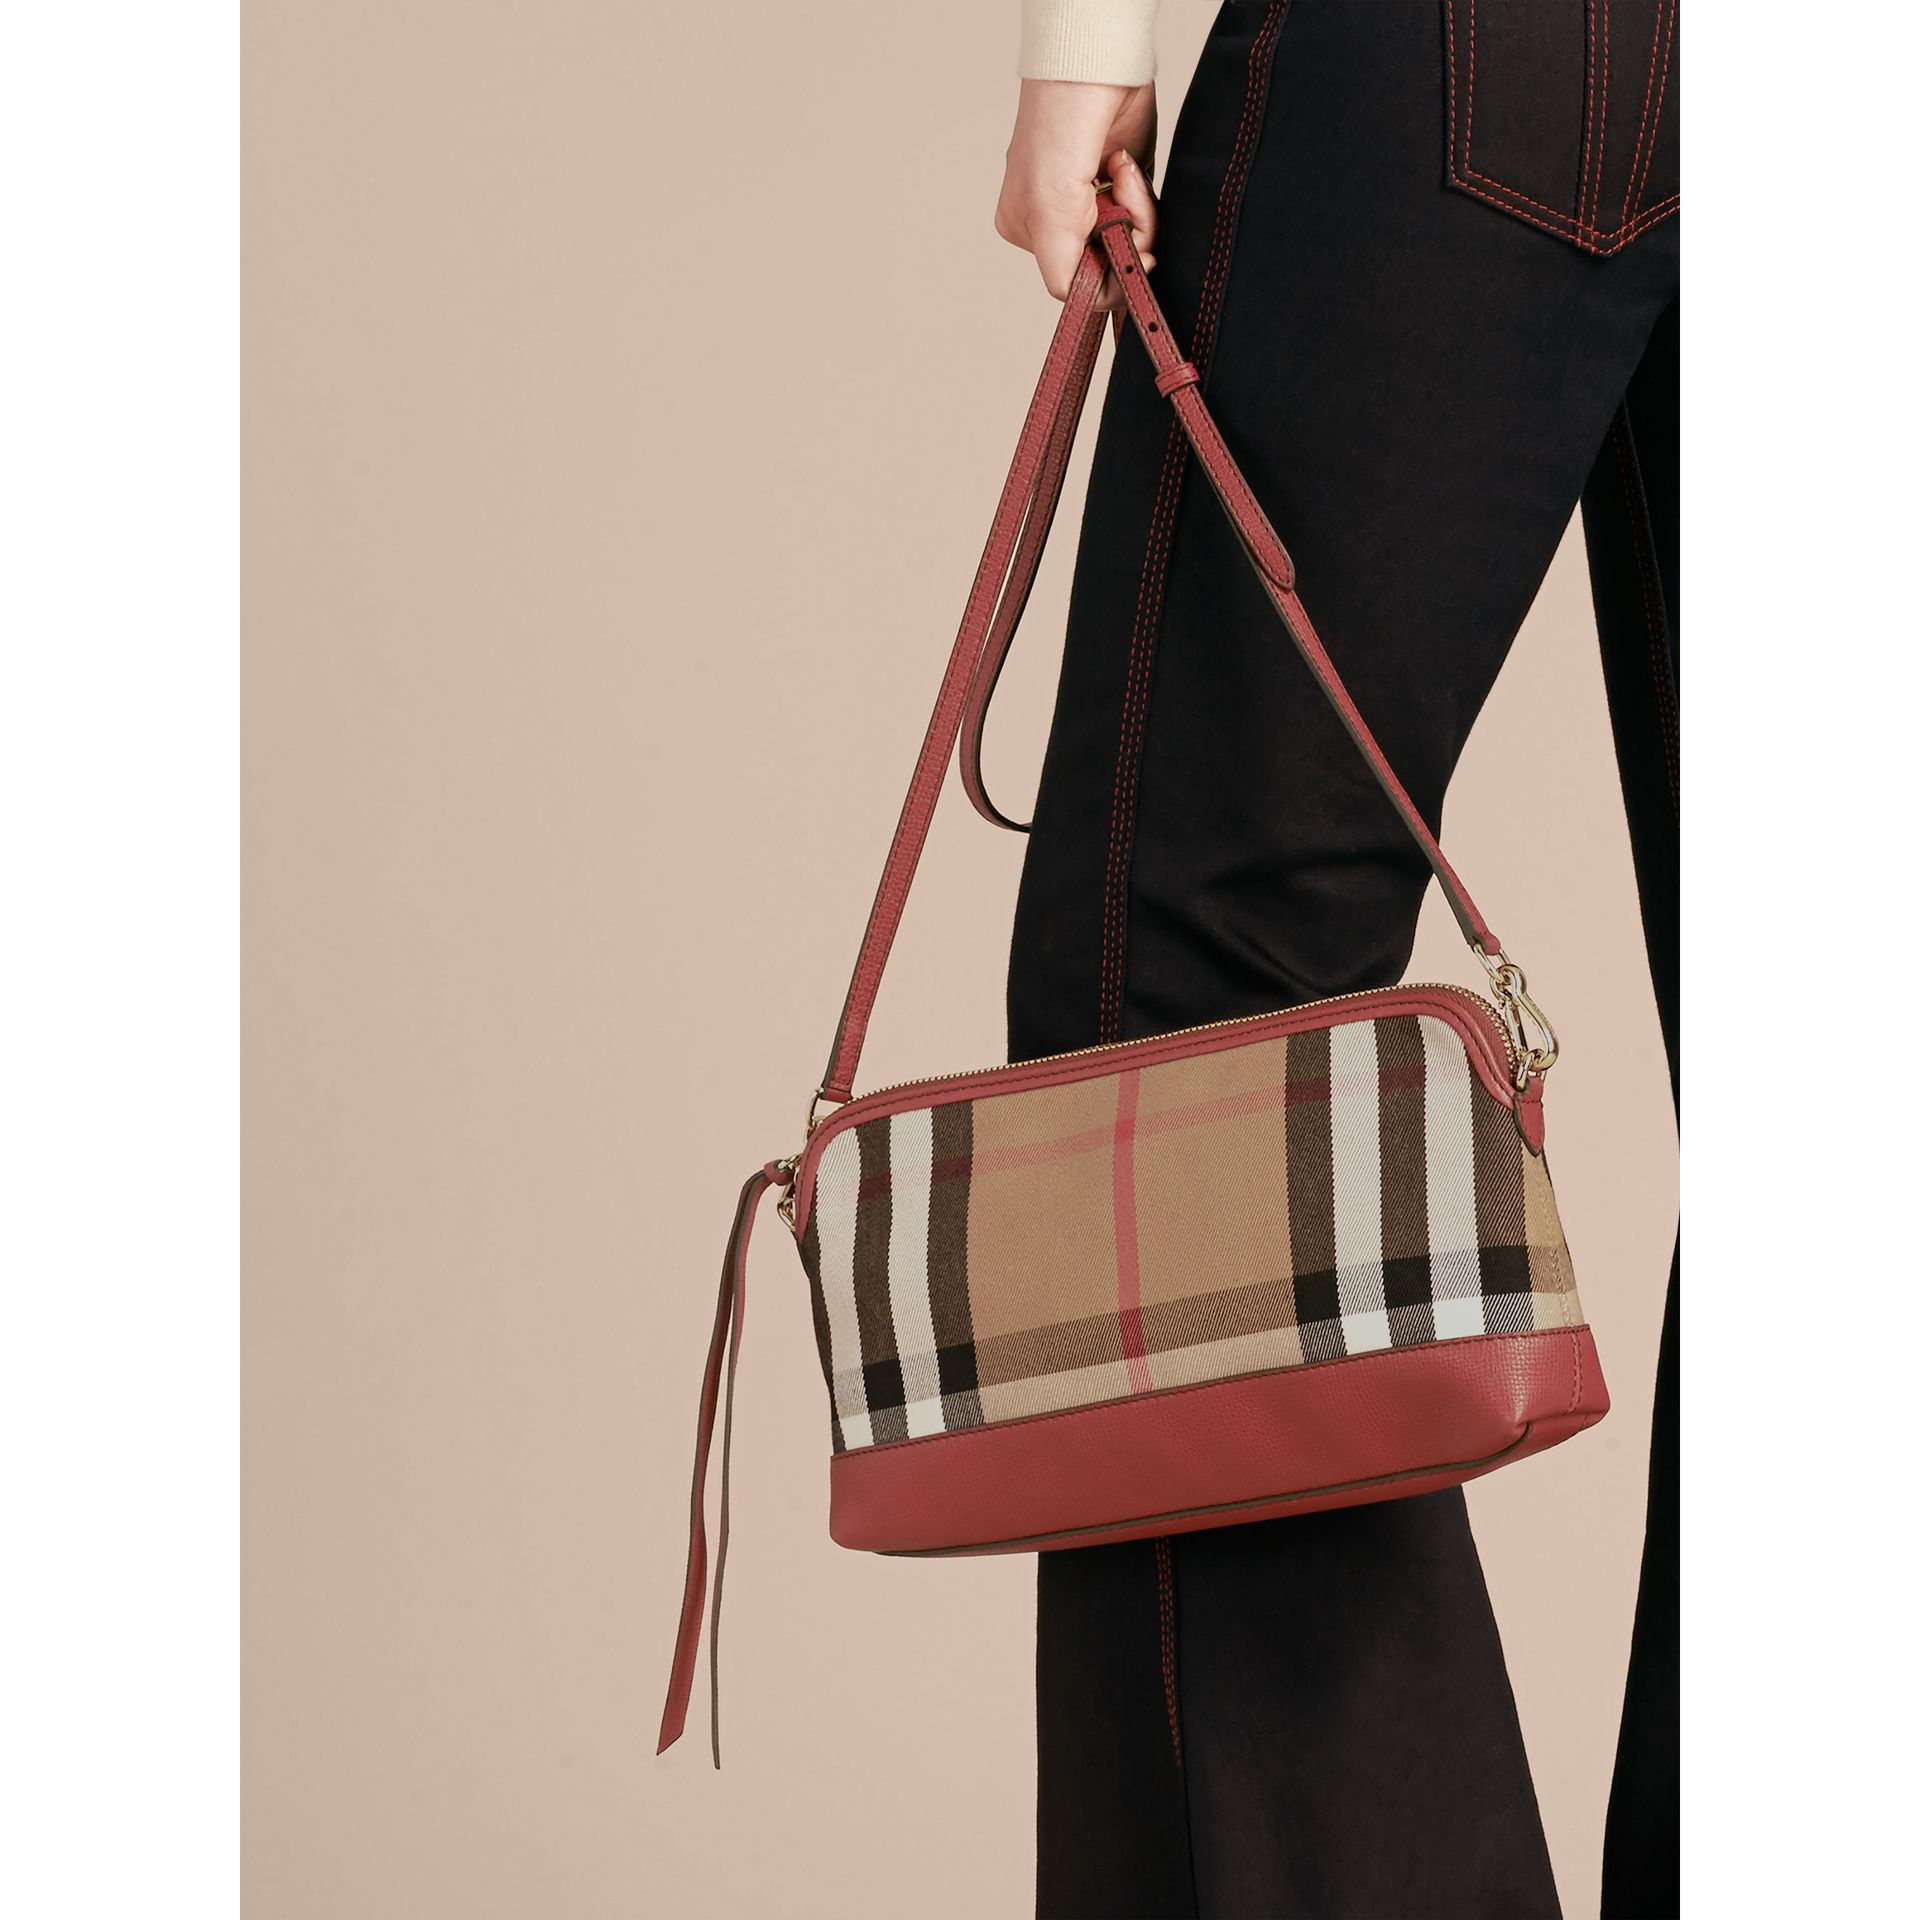 House Check and Leather Clutch Bag in Russet Red - Women | Burberry - gallery image 3